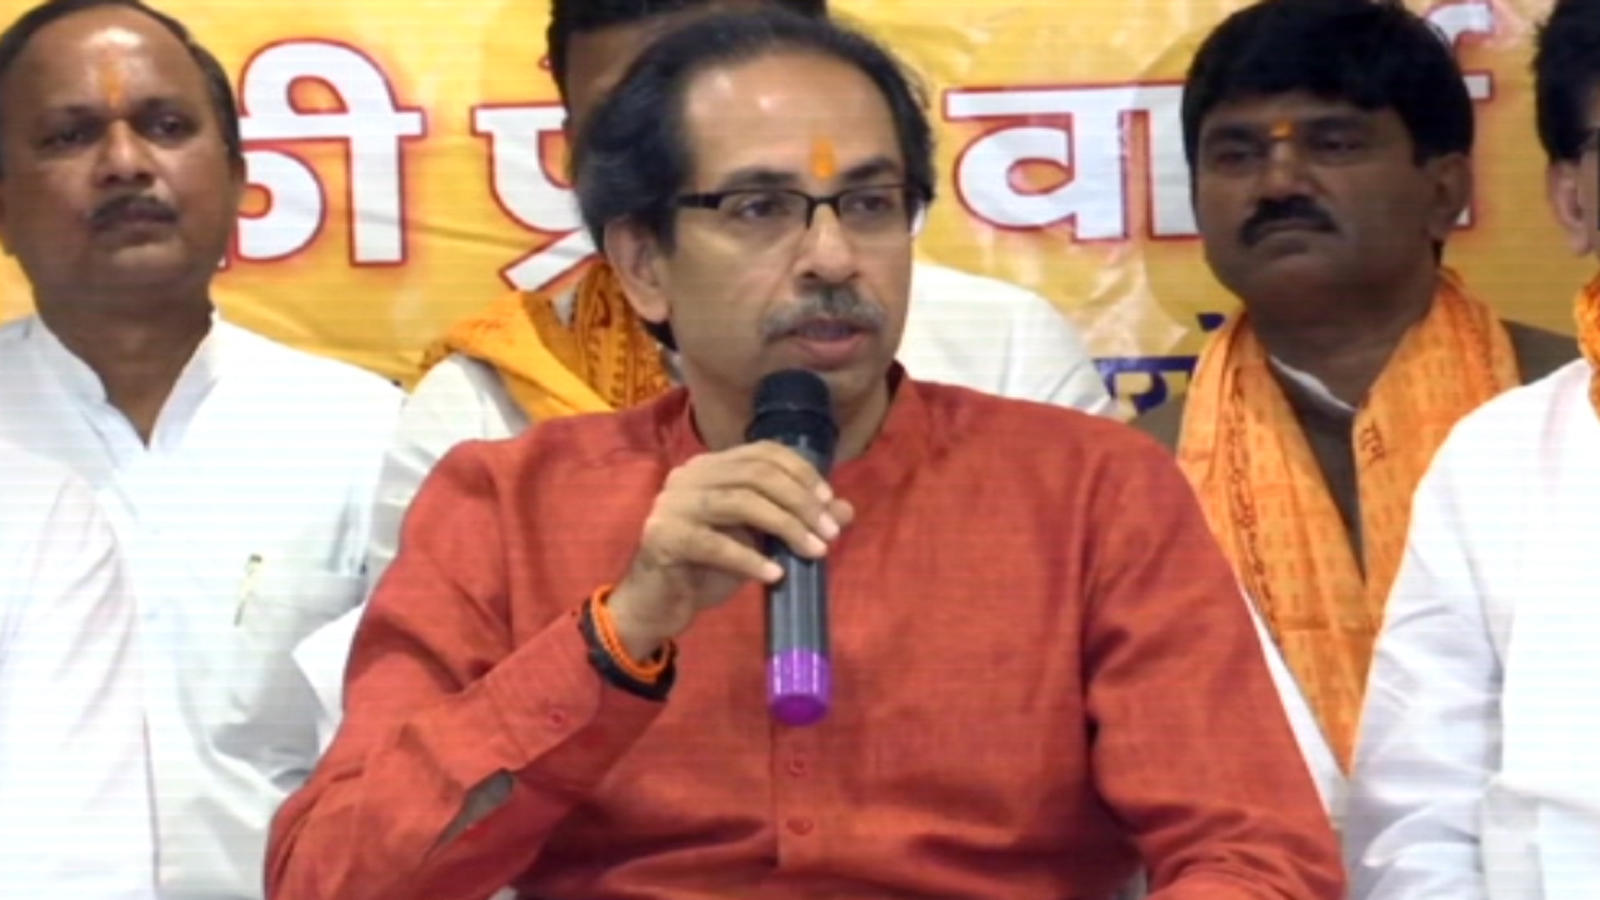 pm-narendra-modi-has-courage-to-take-decision-on-ram-mandir-uddhav-thackeray